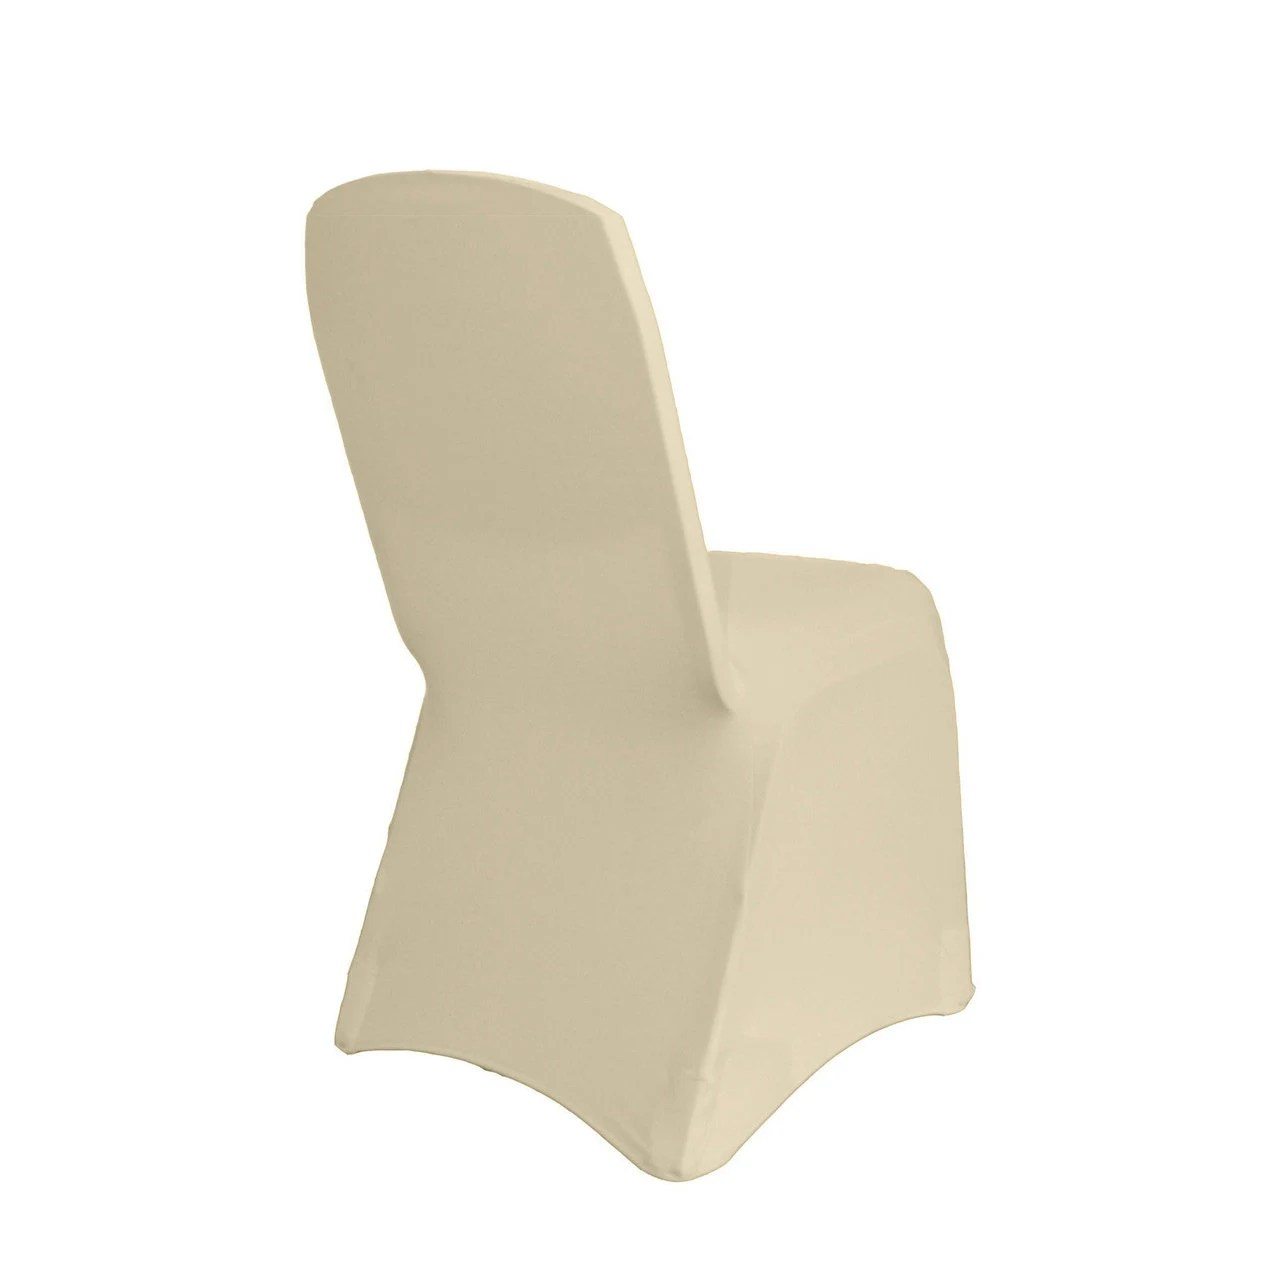 banquet chair covers wholesale hardwood folding chairs ivory square top spandex cover etsy image 0